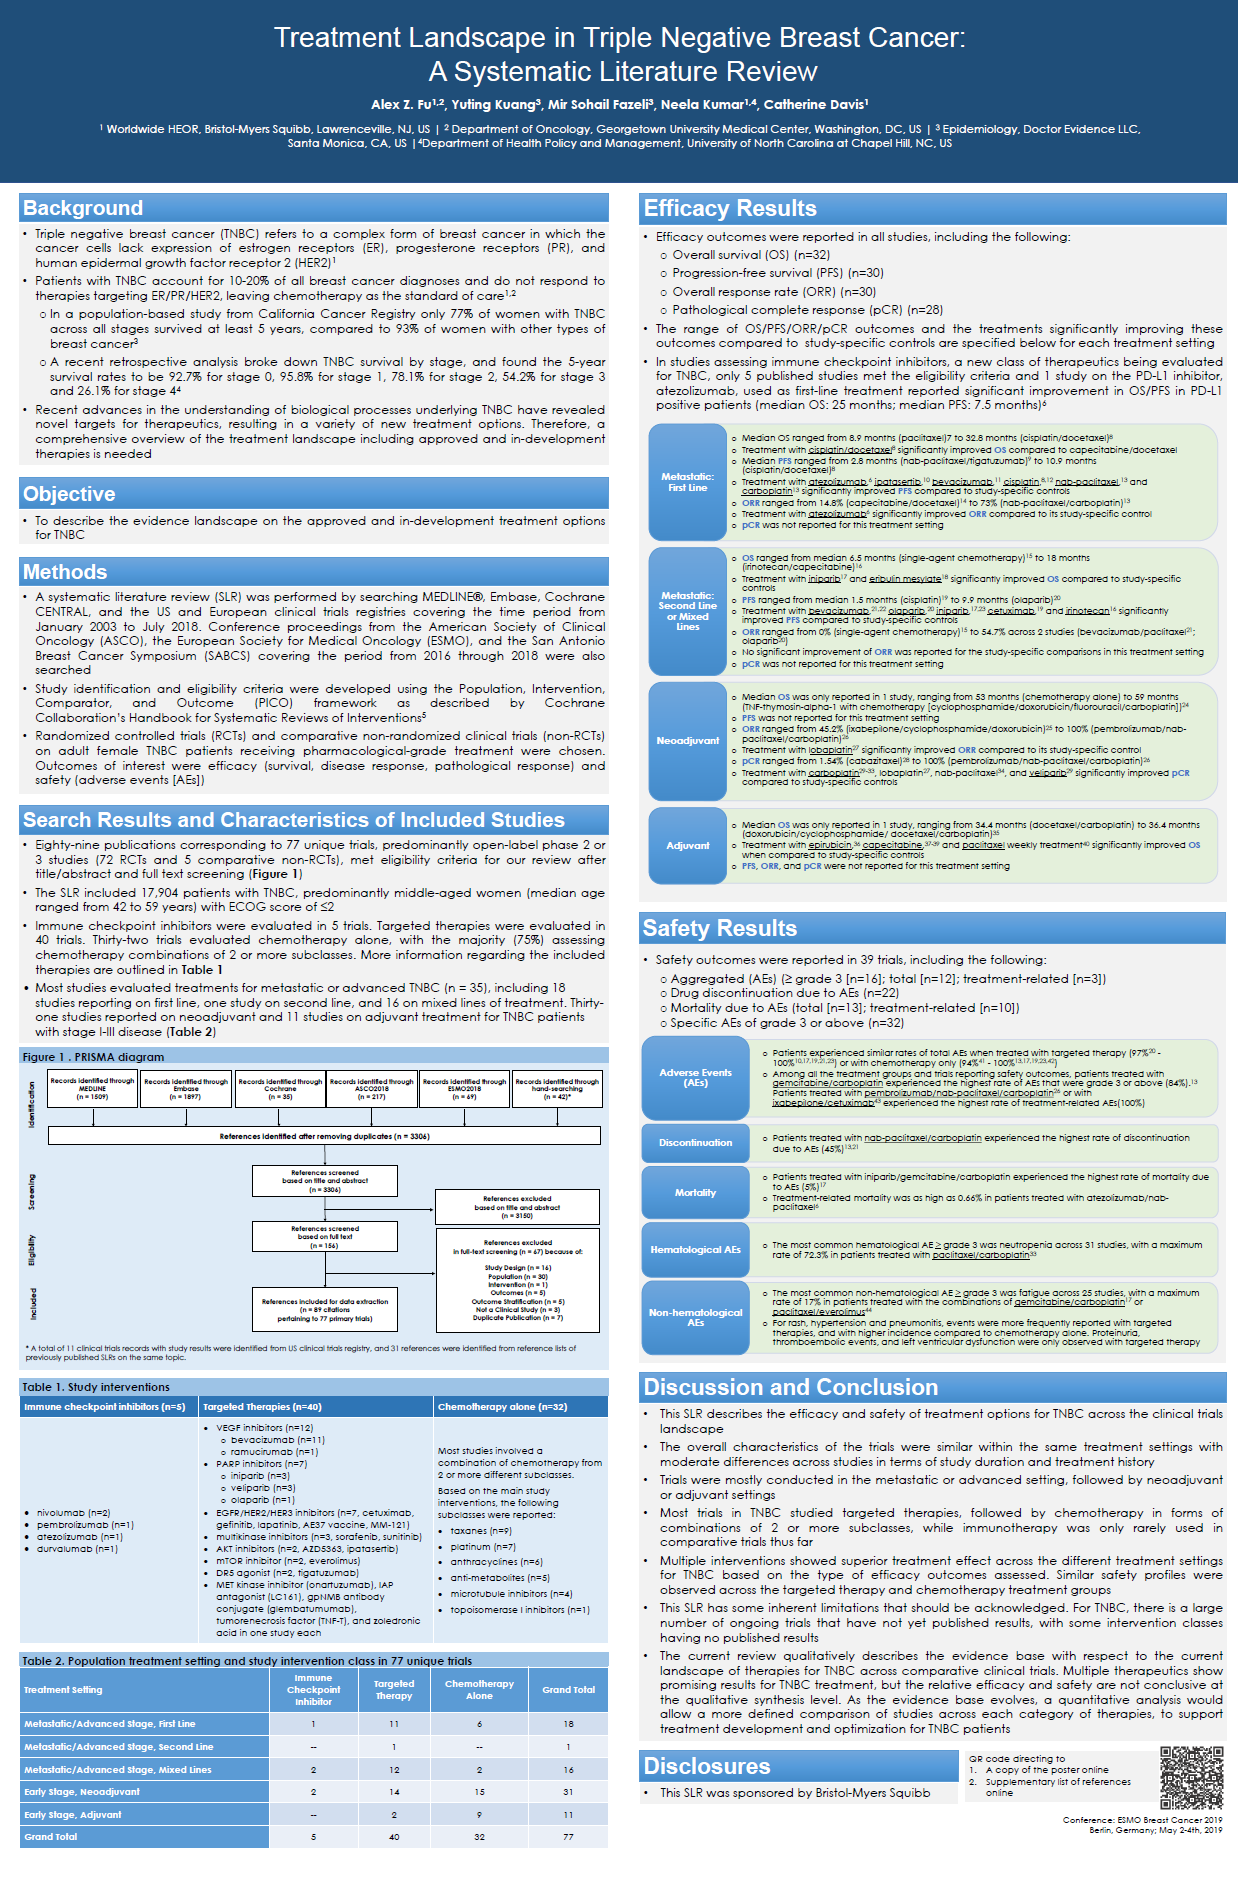 2019-ESMO-DRE-BMS-Poster-Final-img